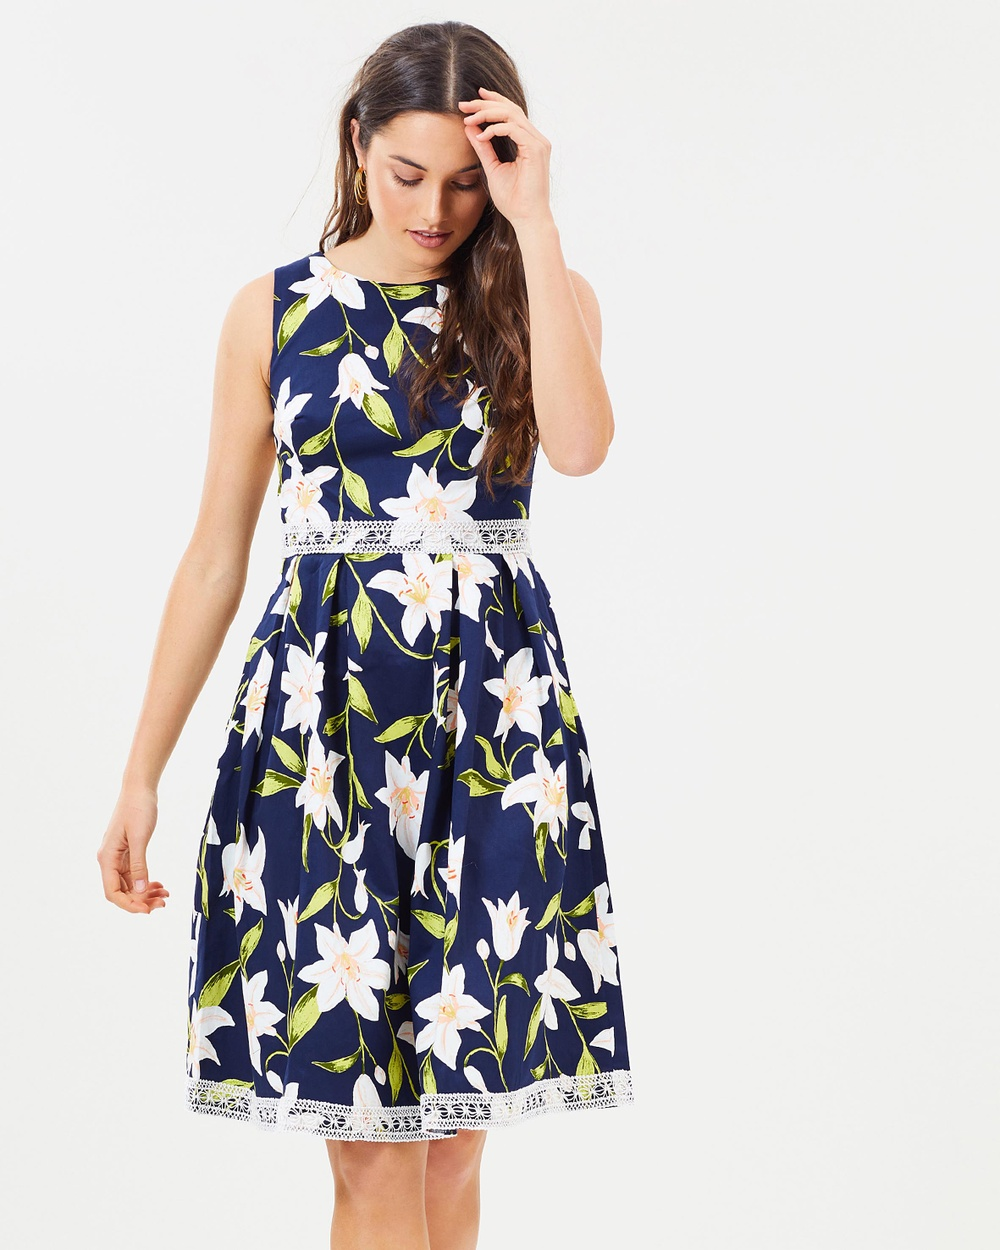 Dorothy Perkins Lily Cotton Midi Dress Dresses Navy Blue Lily Cotton Midi Dress